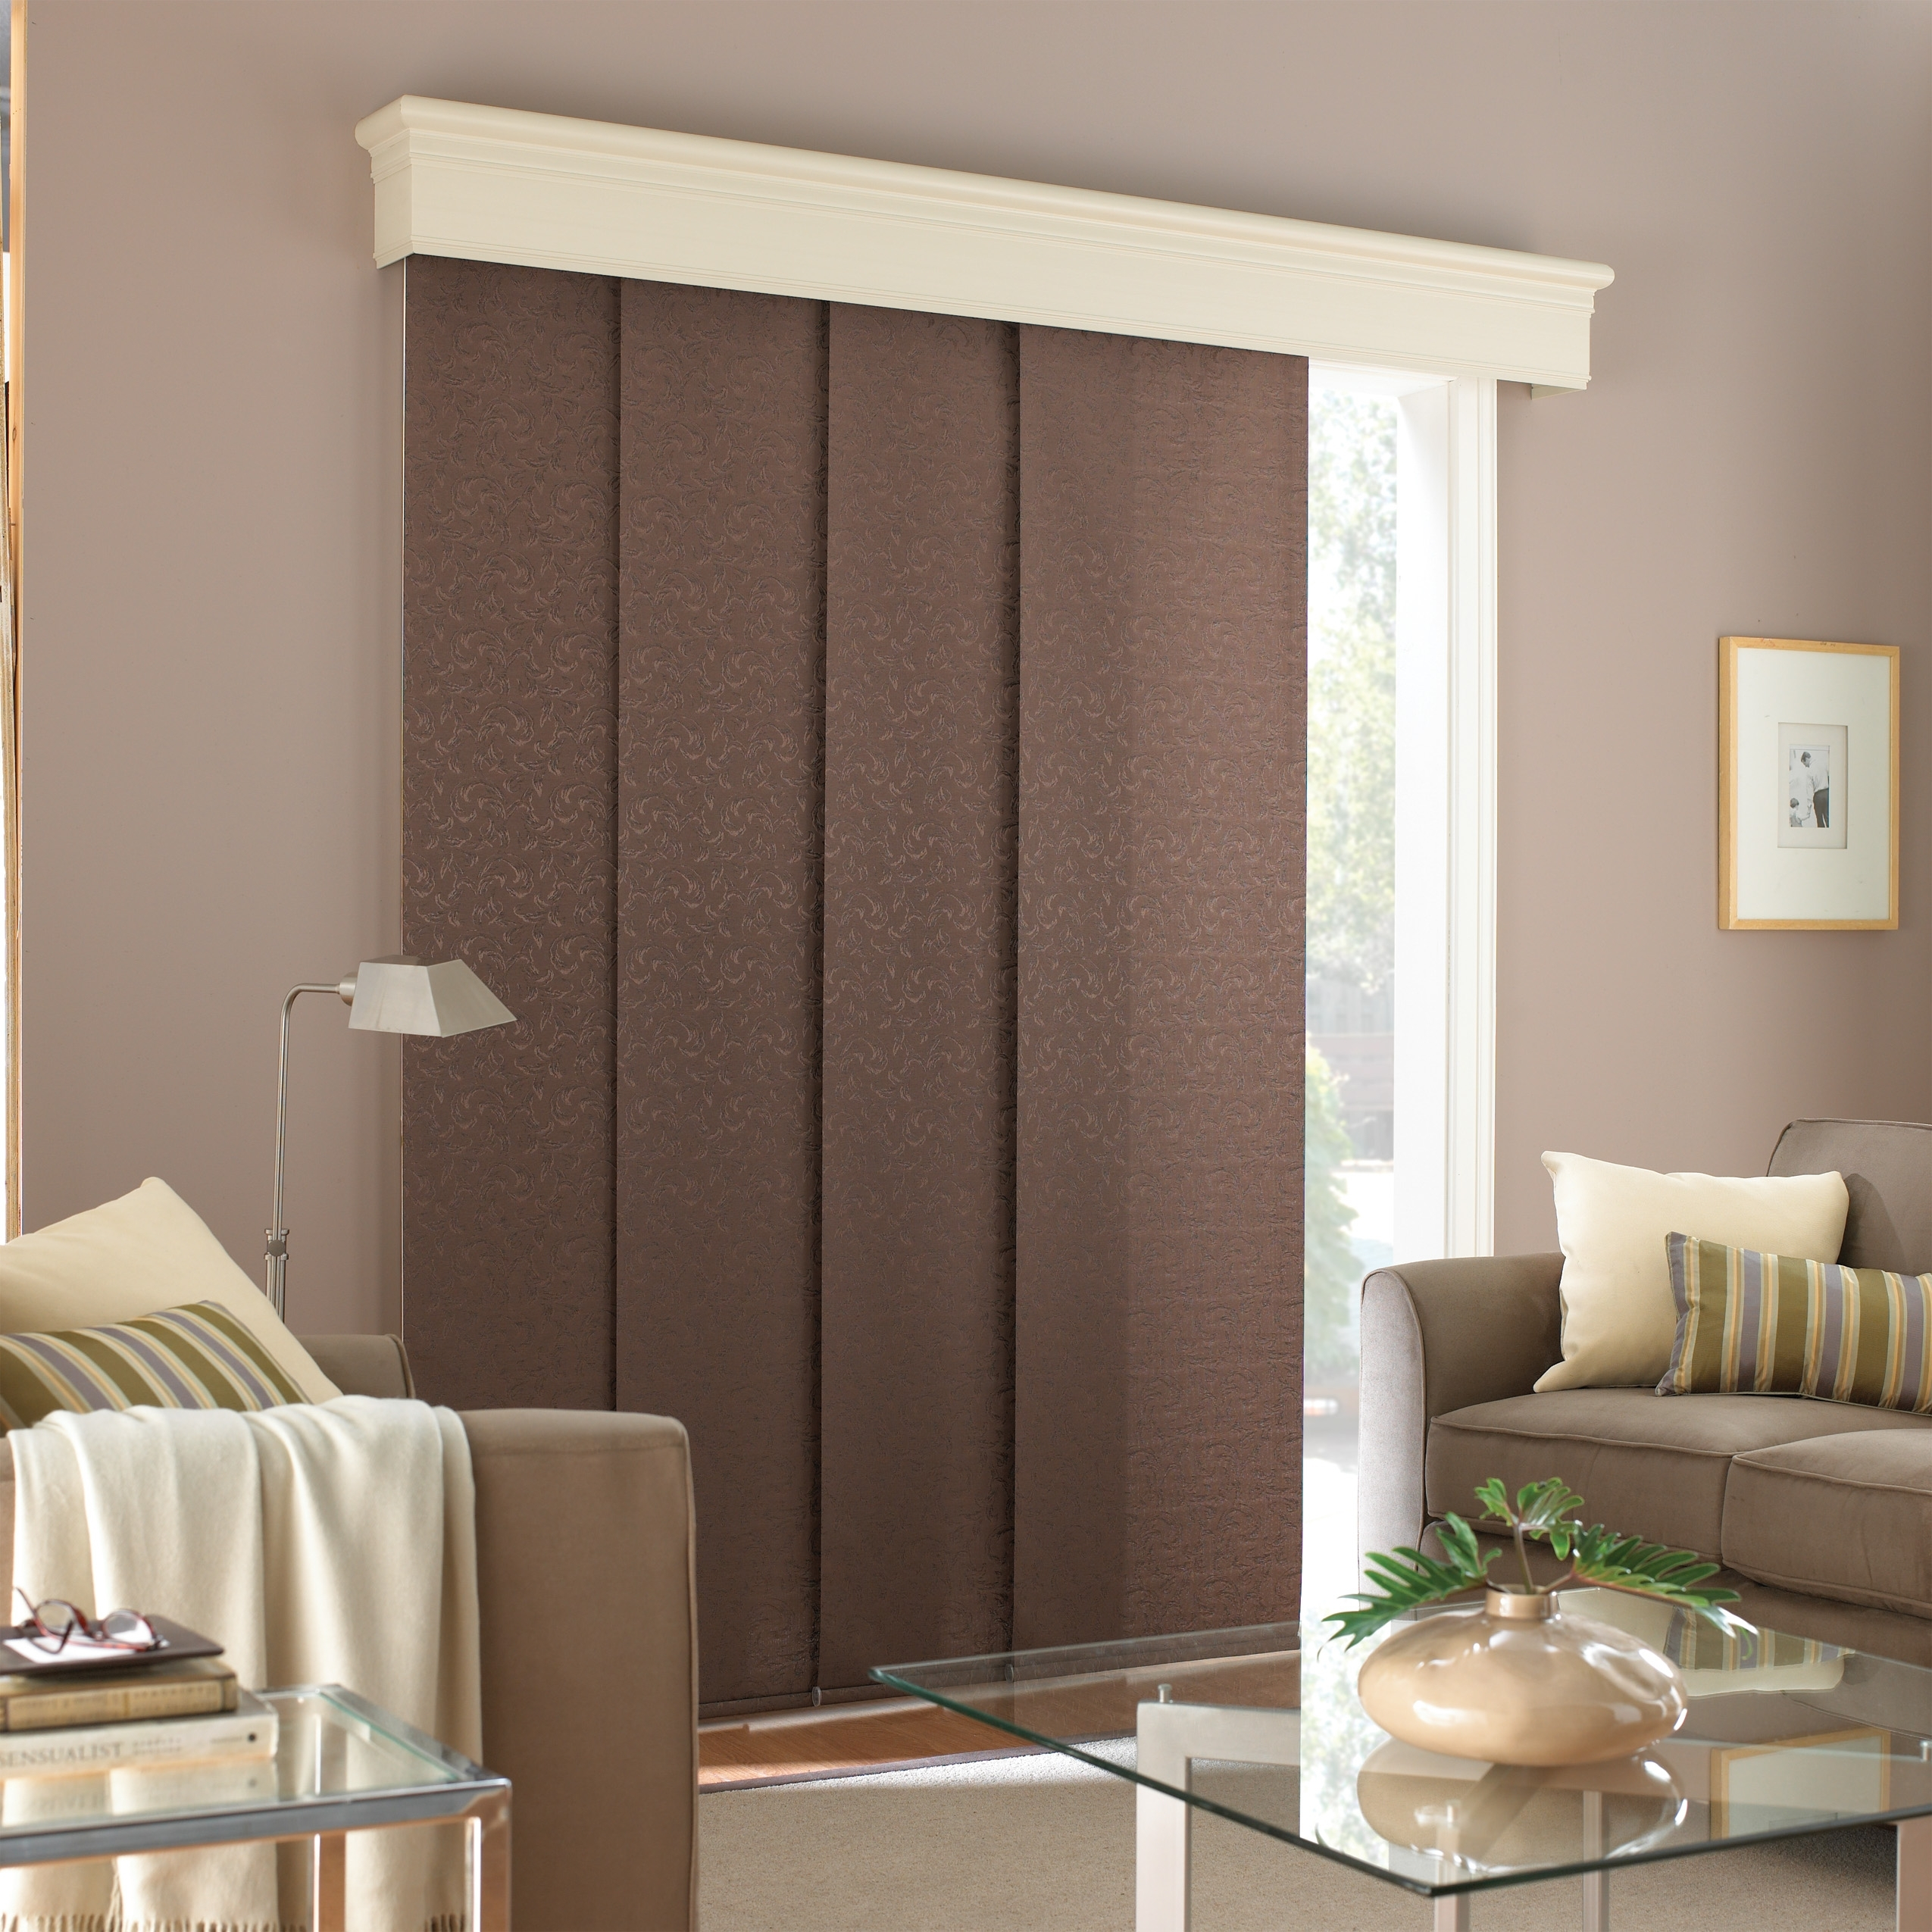 panel doors patio size with panels velcro sliding of blinds luxury unique door full vertical